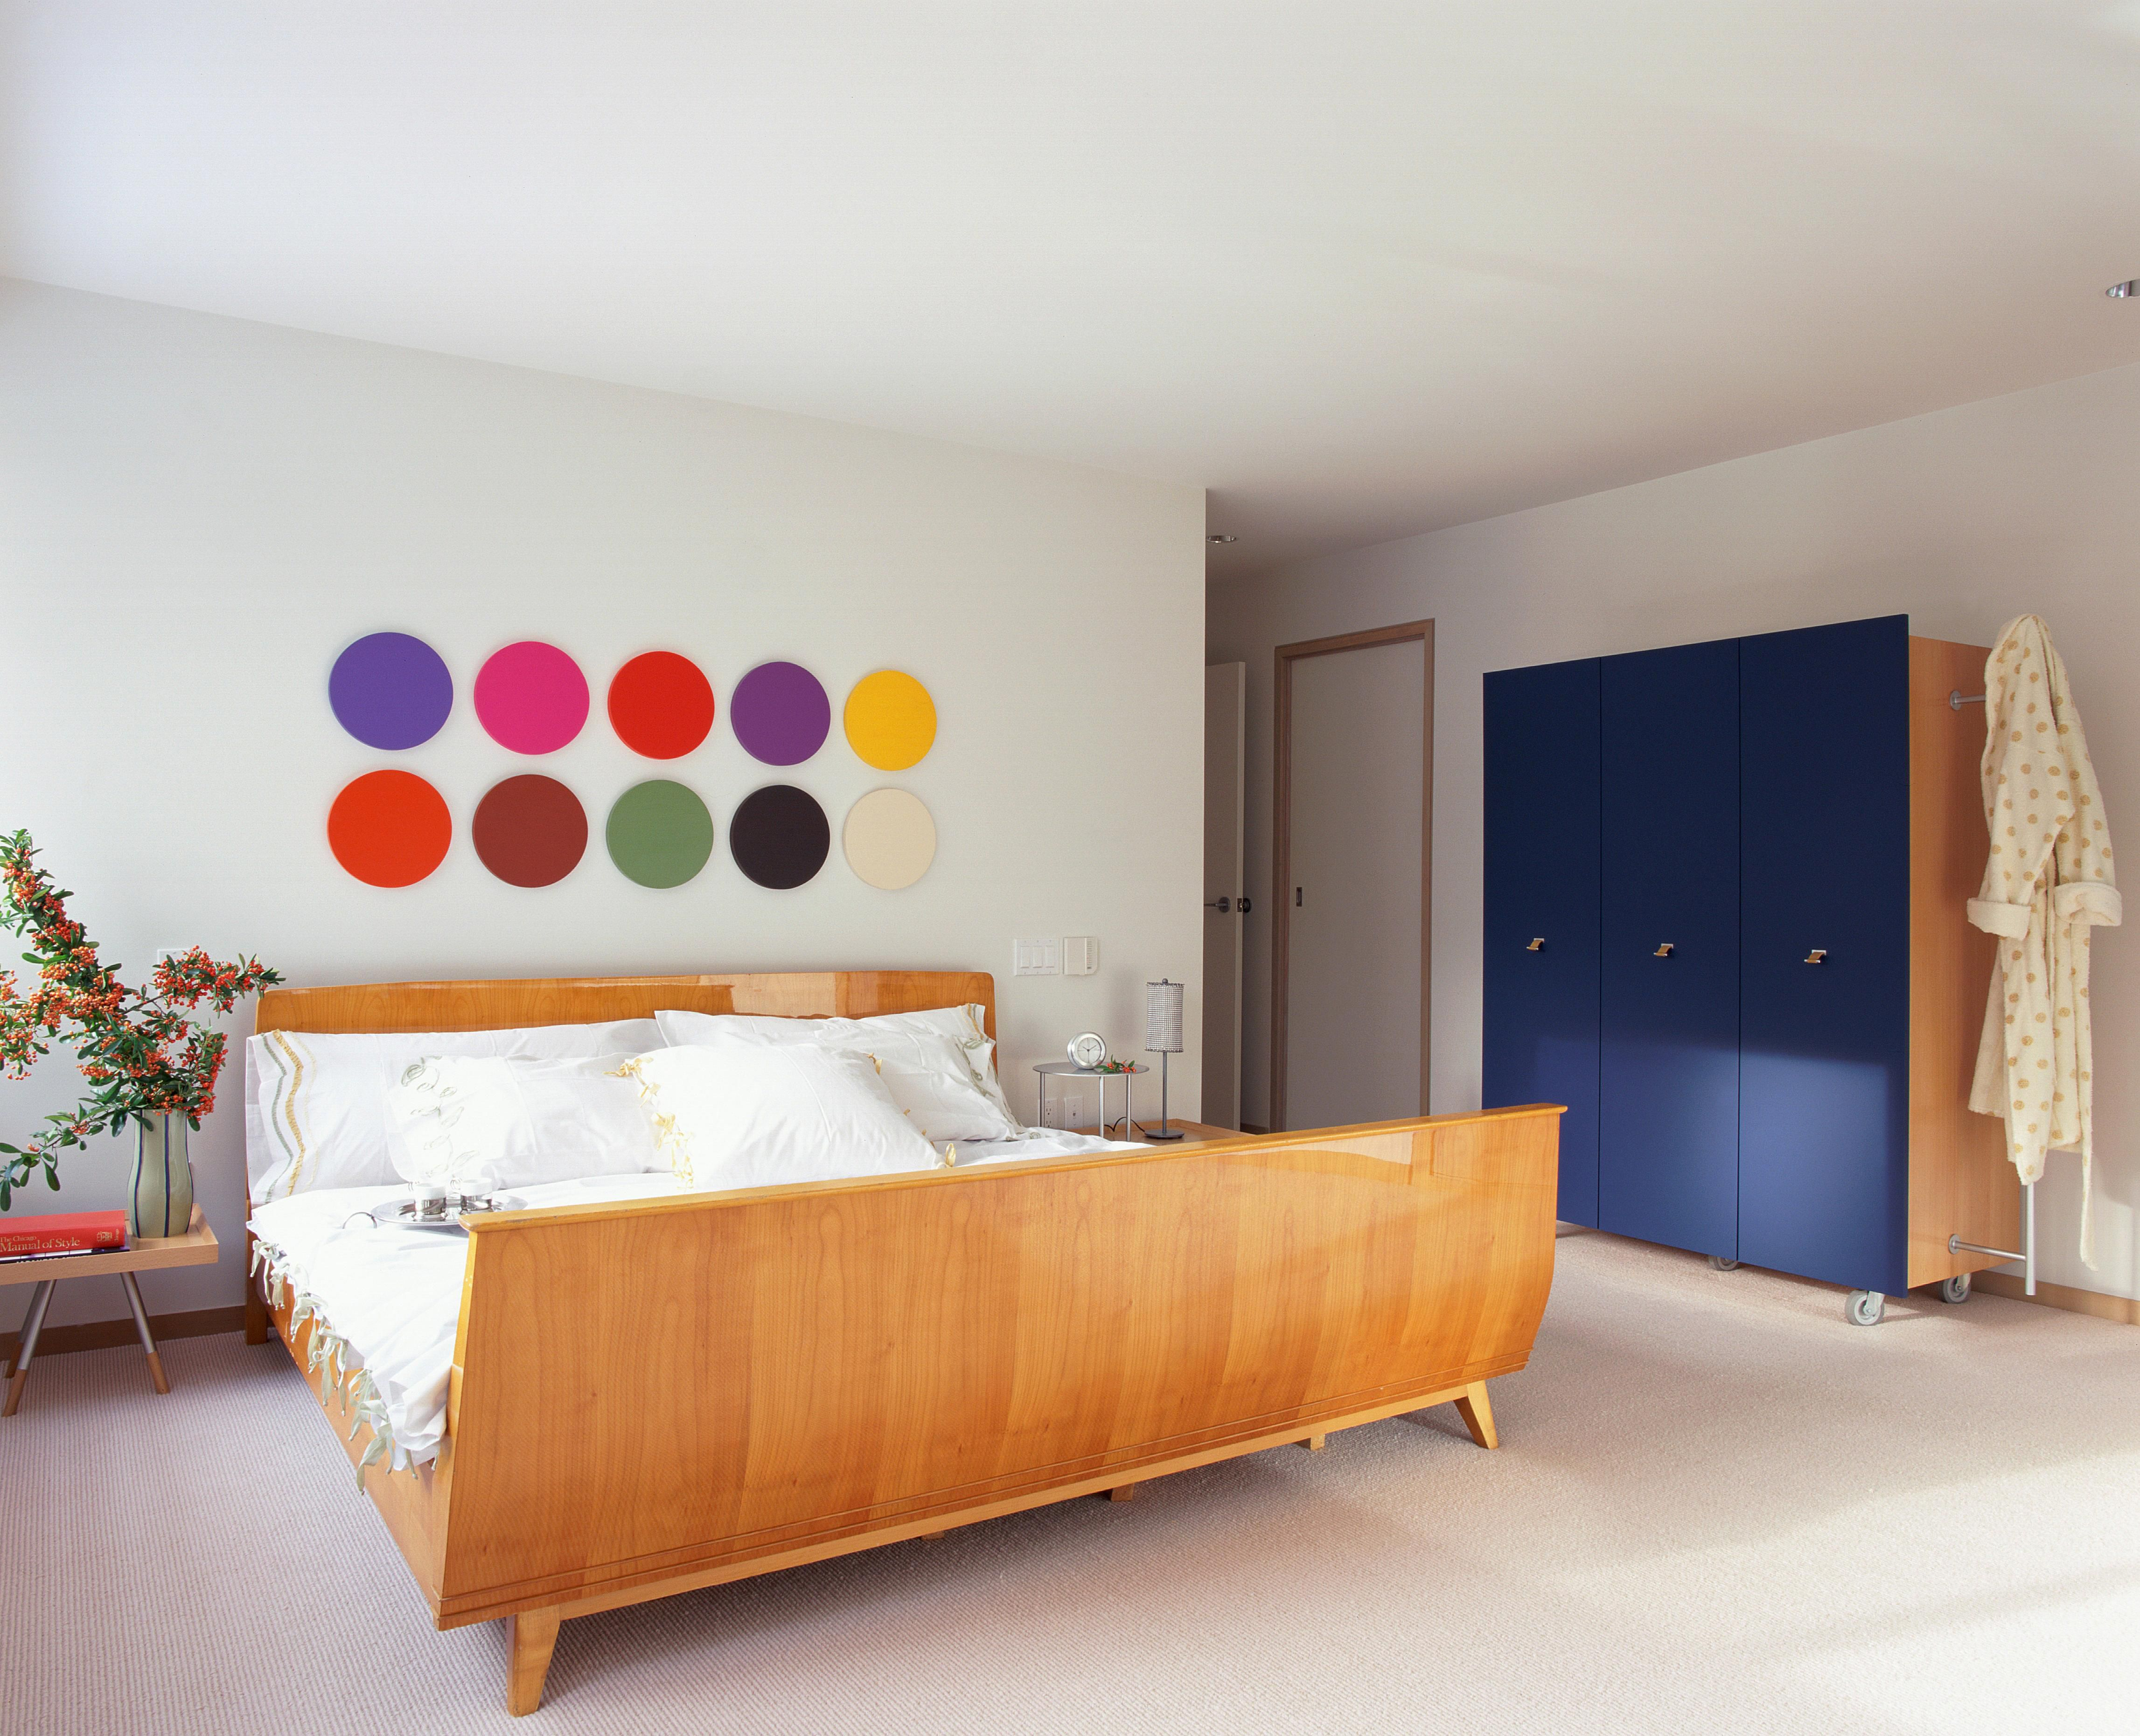 accent create bed this square bedroom panels contemporary a the pin modern to uses wood wall behind